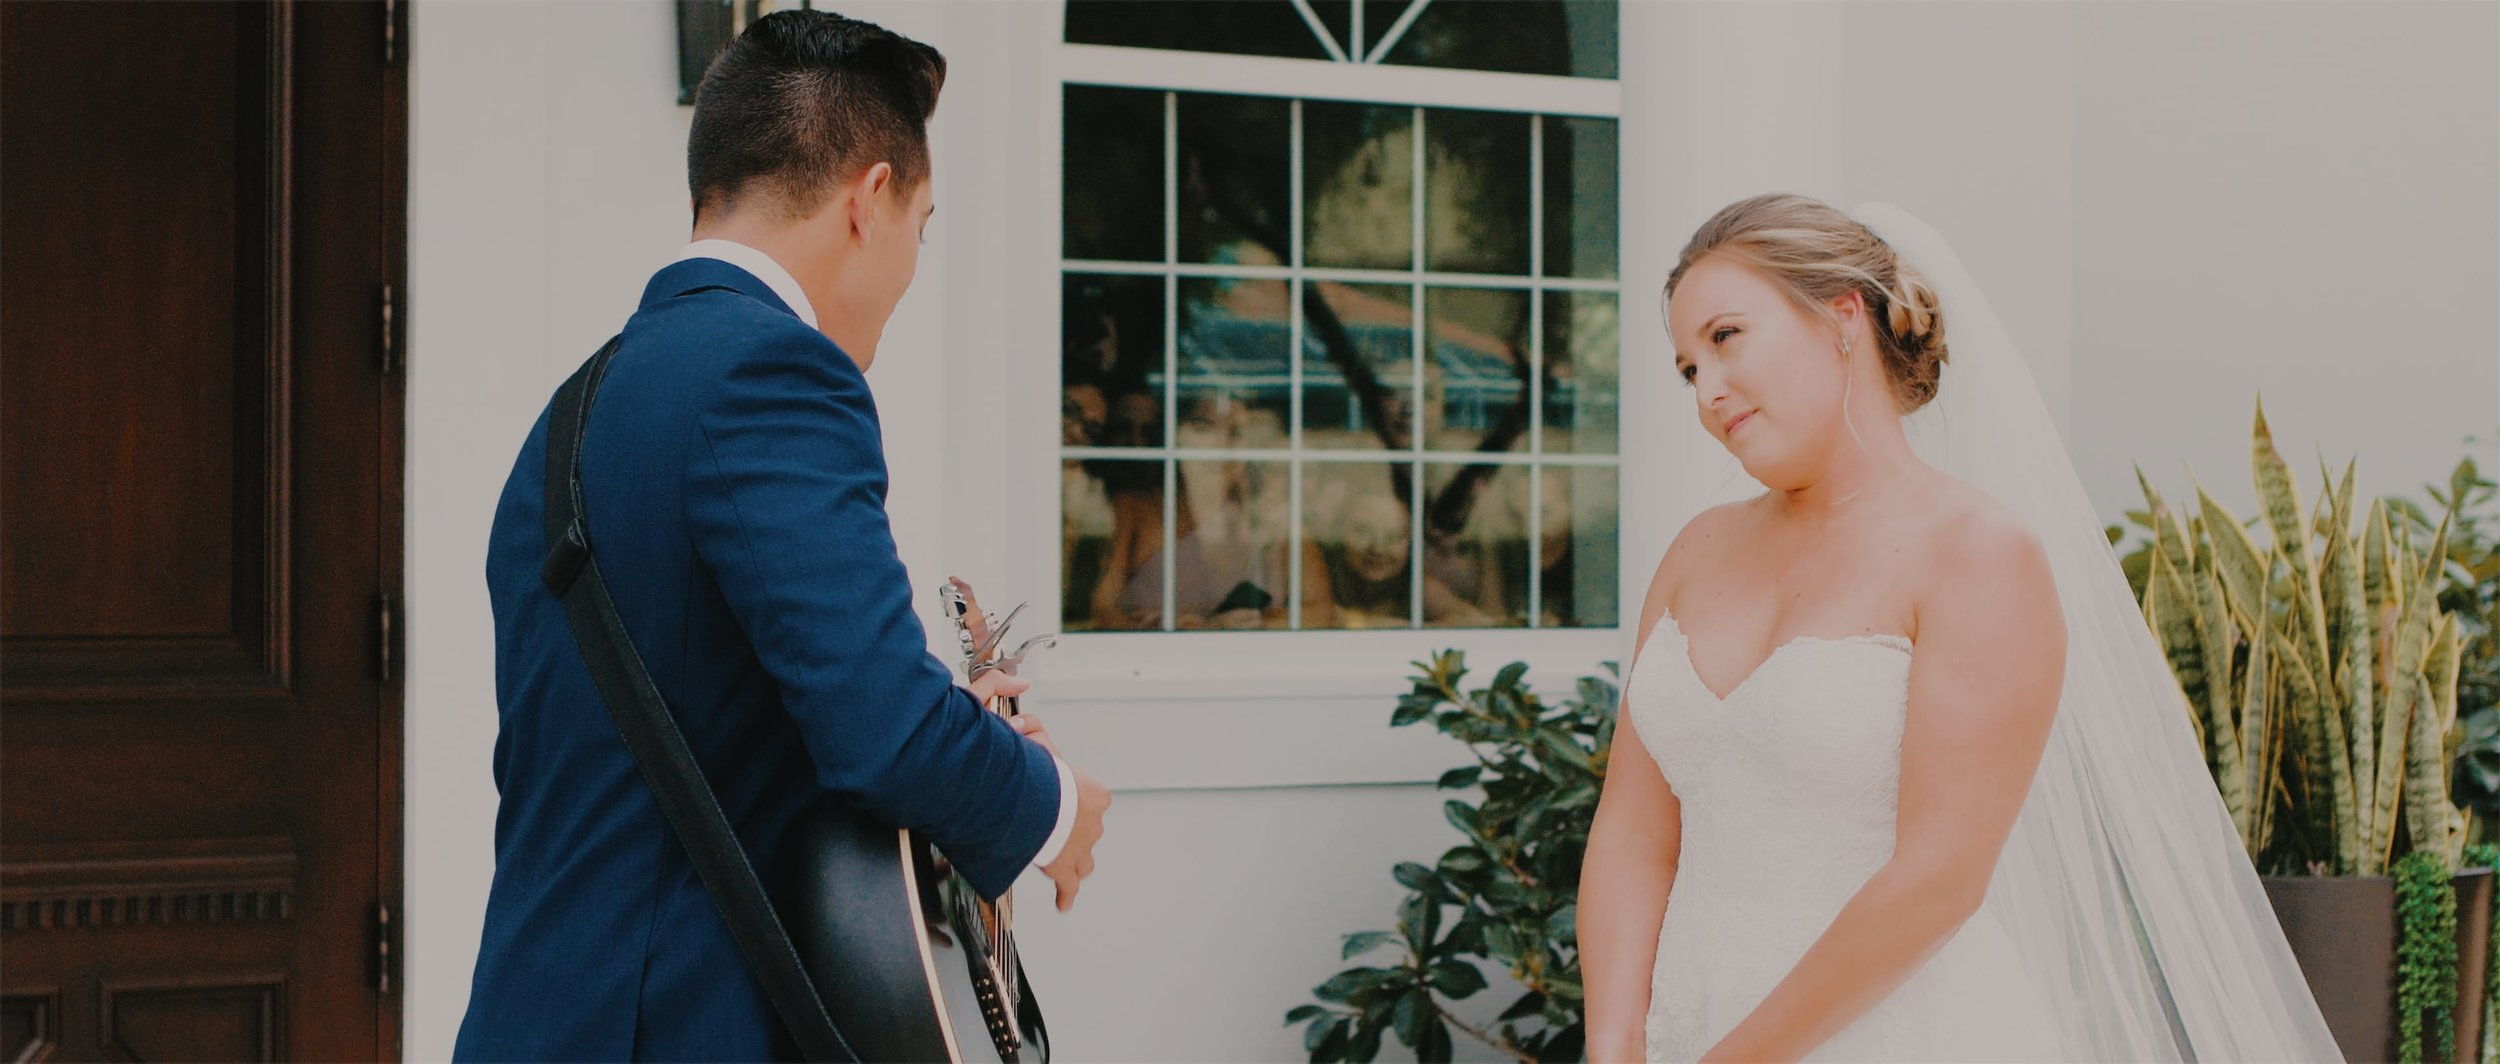 Groom Plays Guitar For Bride at Florida Wedding